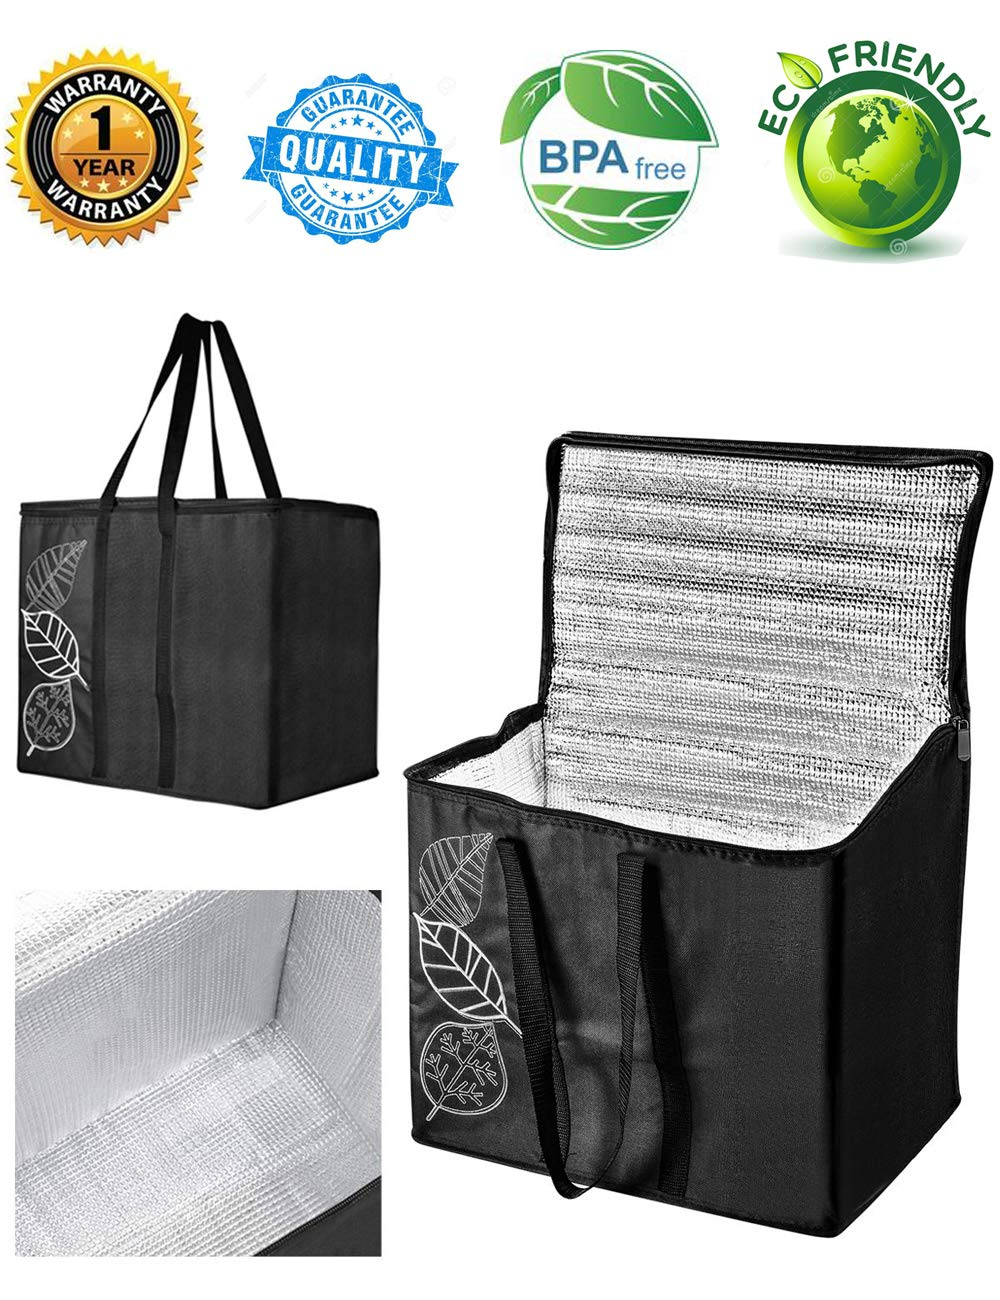 grocerybags coolerbag Insulated Food Delivery Grocery Bag (Set of 2) Collapsible Extra Large Reusable Shopping Tote Zipper TOP LID for Hot or Cold Food Reinforced - 600D Oxford Cloth Made - 32ounce